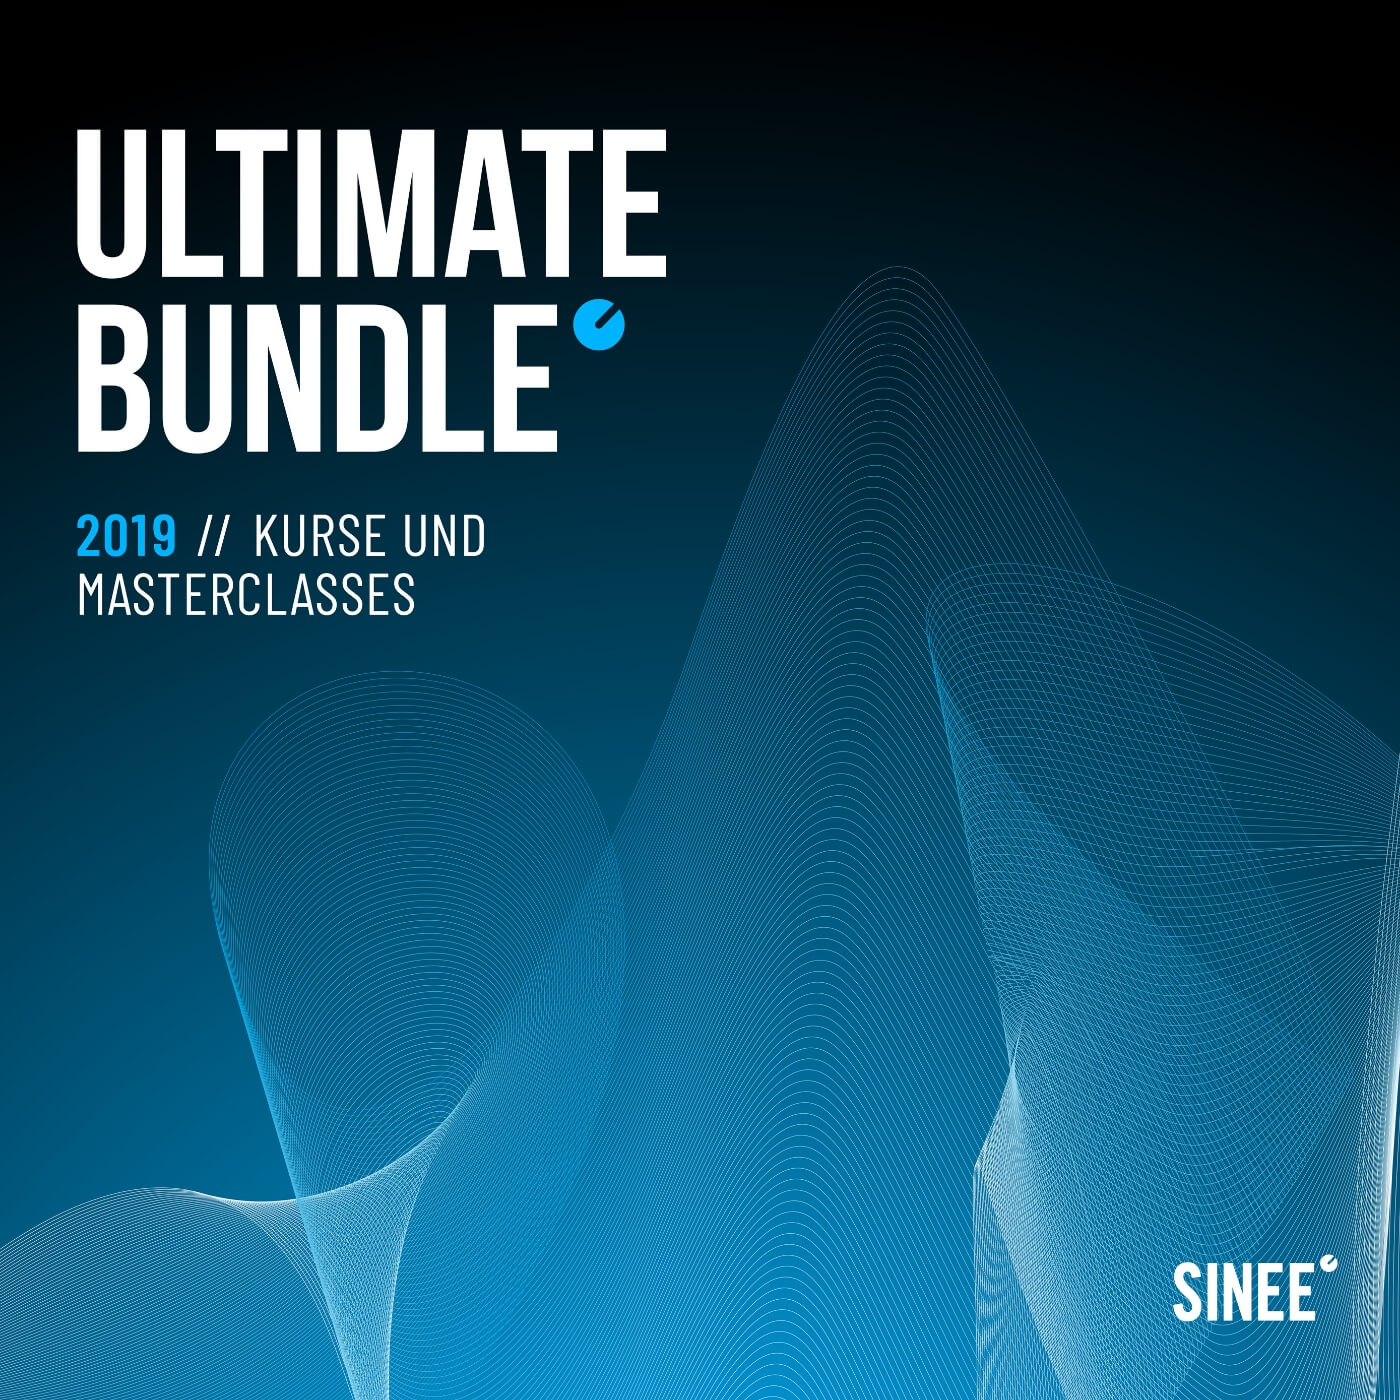 Ultimate Bundle 2019 – Kurse & Masterclasses